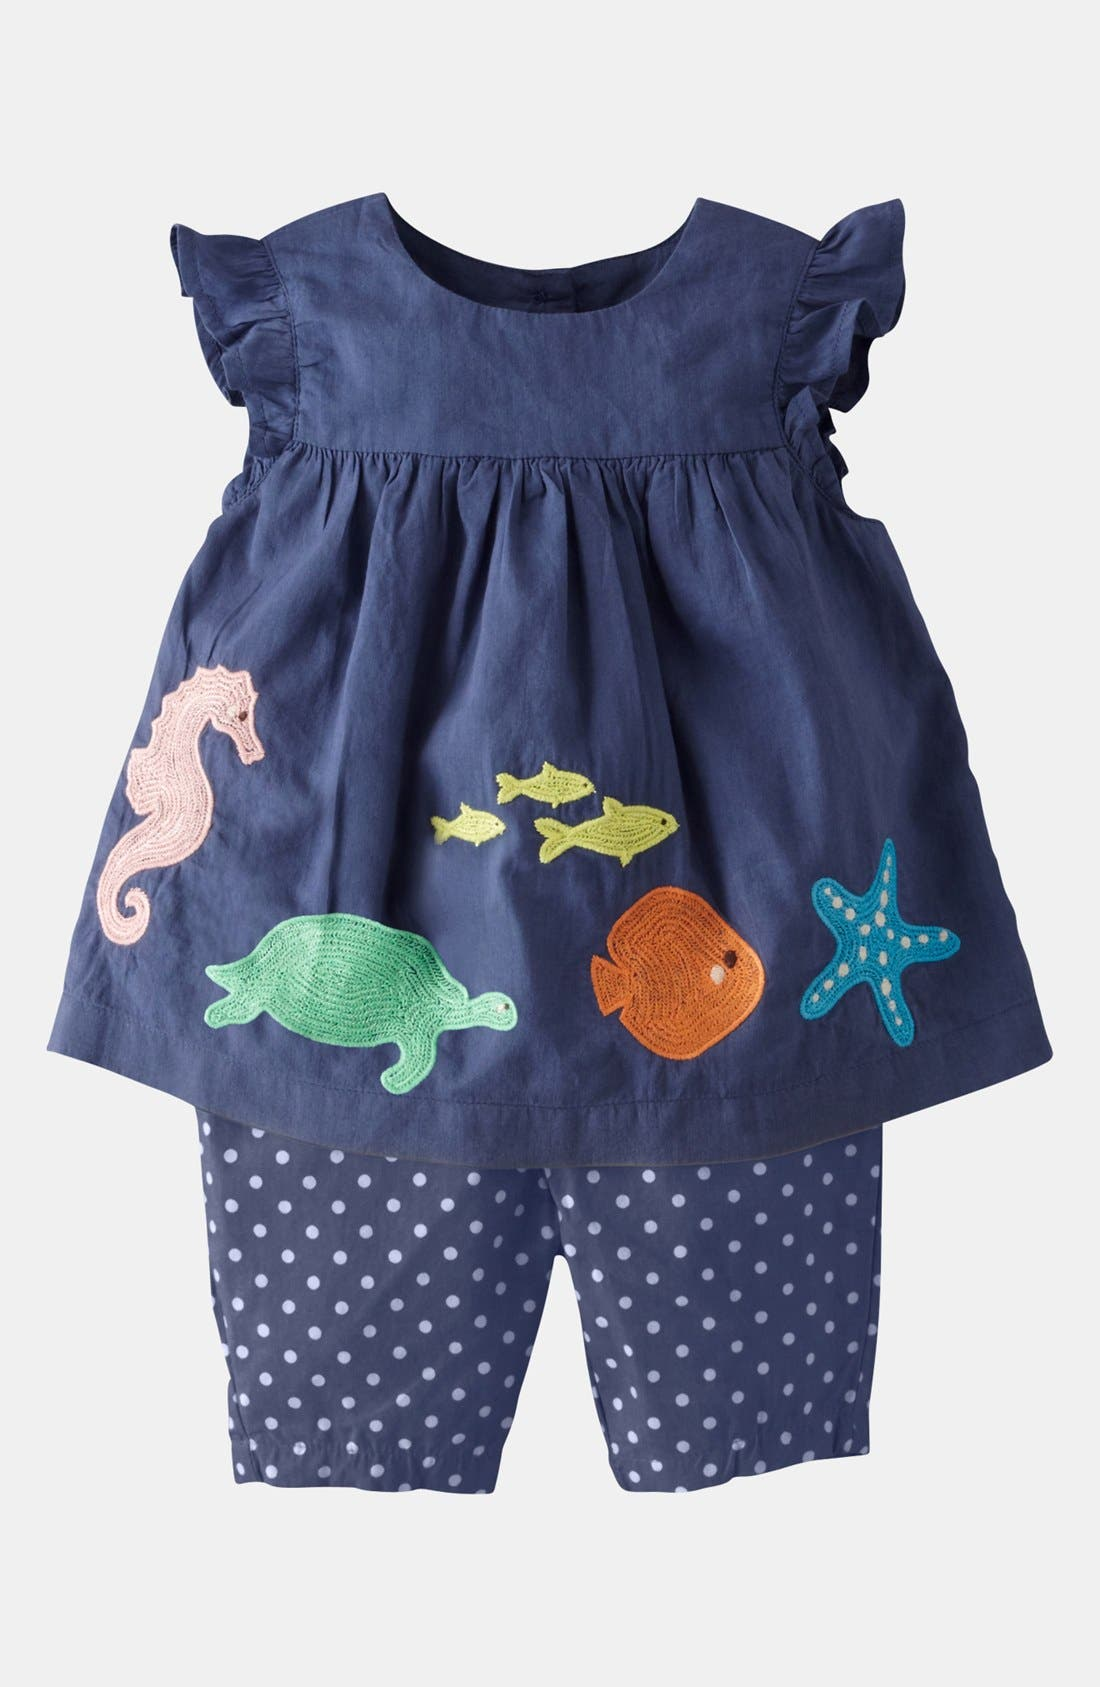 Alternate Image 1 Selected - Mini Boden 'Summer' Embroidered Top & Leggings (Baby)